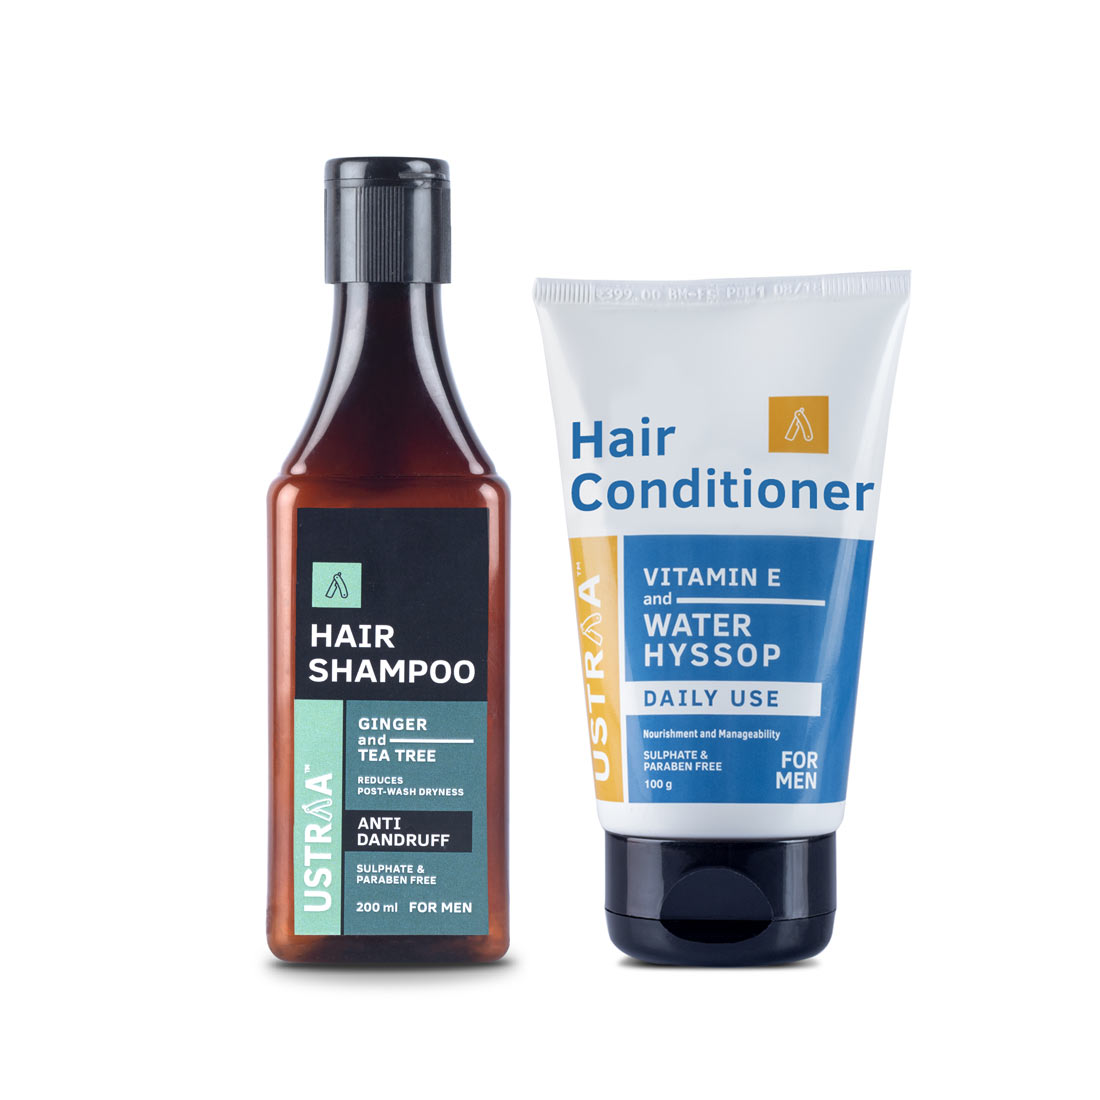 Anti-Dandruff Shampoo & Daily Use Hair Conditioner